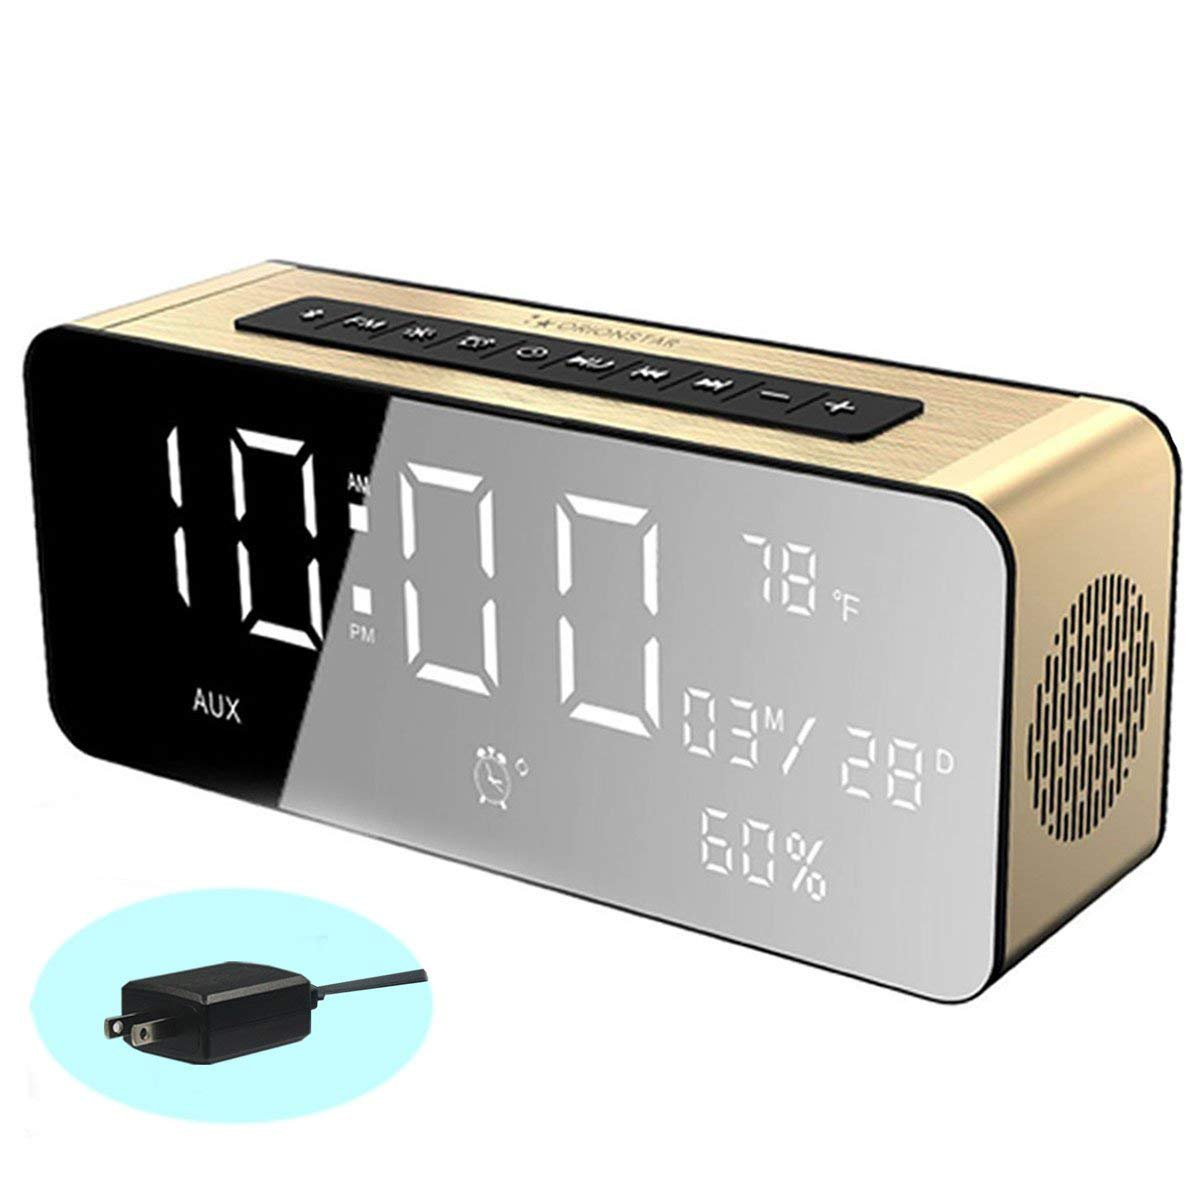 Orionstar Wireless Bluetooth Alarm Clock Radio Speaker with HD Sound&Big Digital Screen Compatible with iPhone/Android/PC4/Aux/MicroSD/TF/USB for Bedroom Office Model A10 with Wall Charger (Gold)